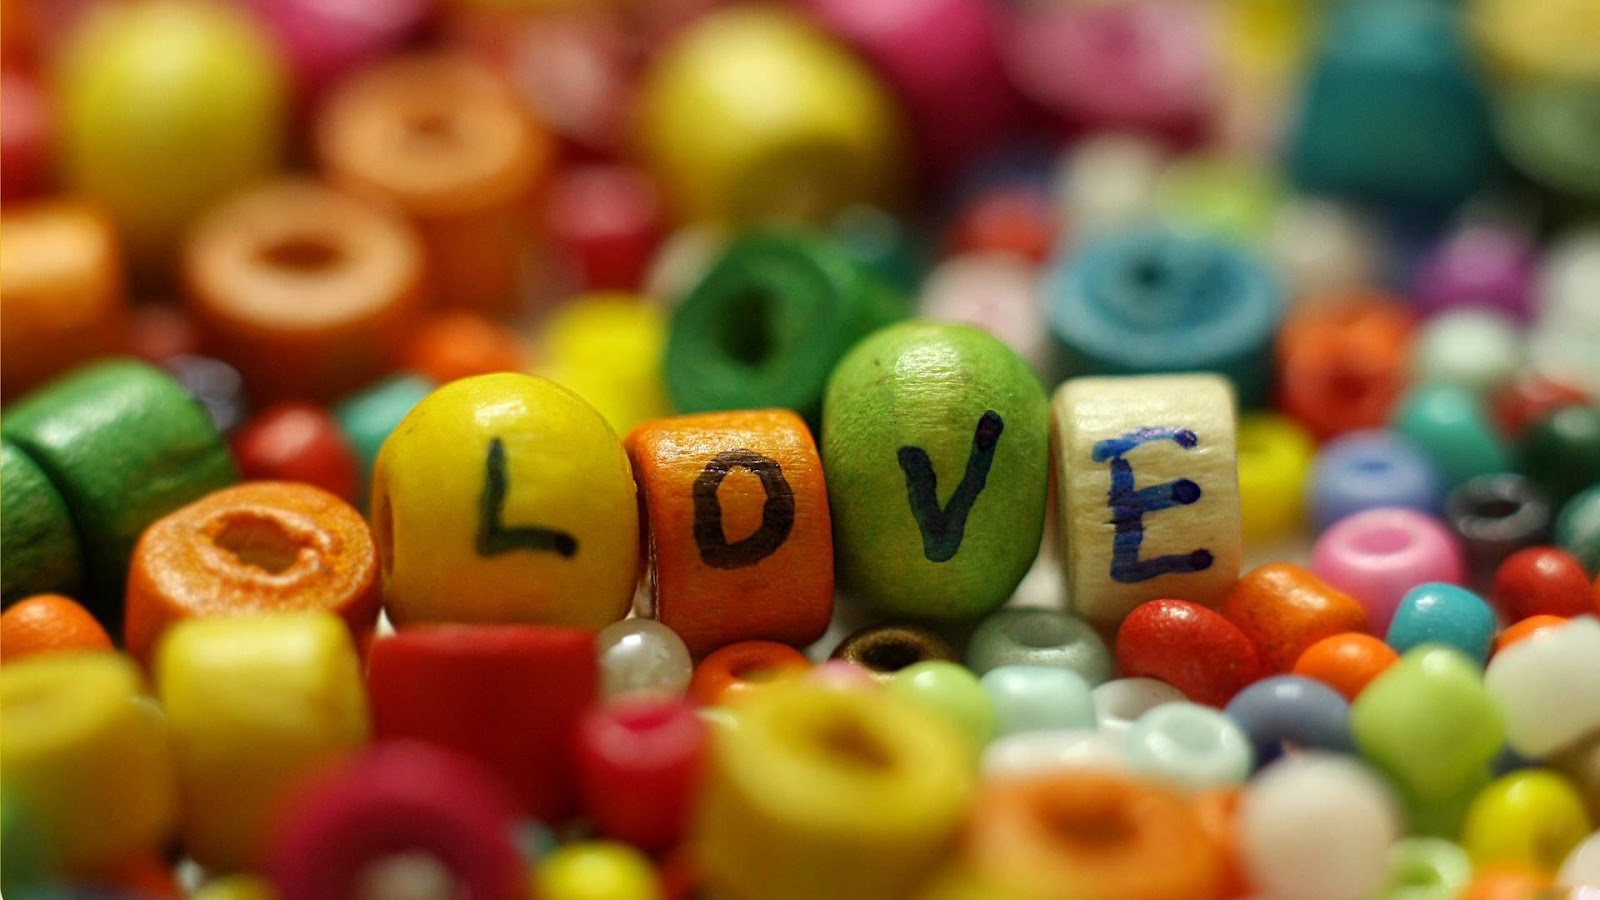 Love Colorful 1920x1080 Wallpaper